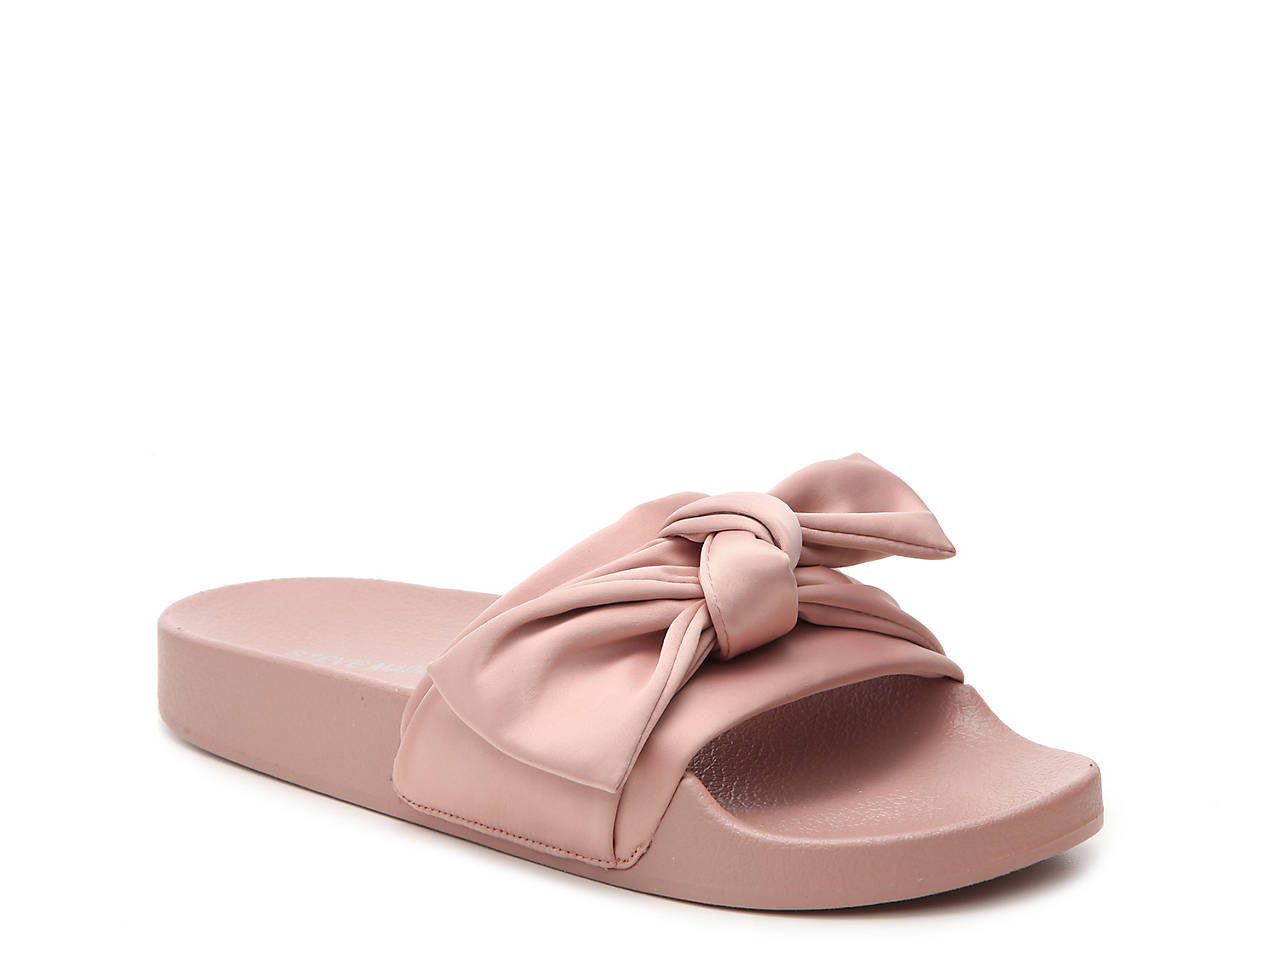 new arrive outlet for sale uk availability Steve Madden Silky Slide Sandal Women's Shoes | DSW